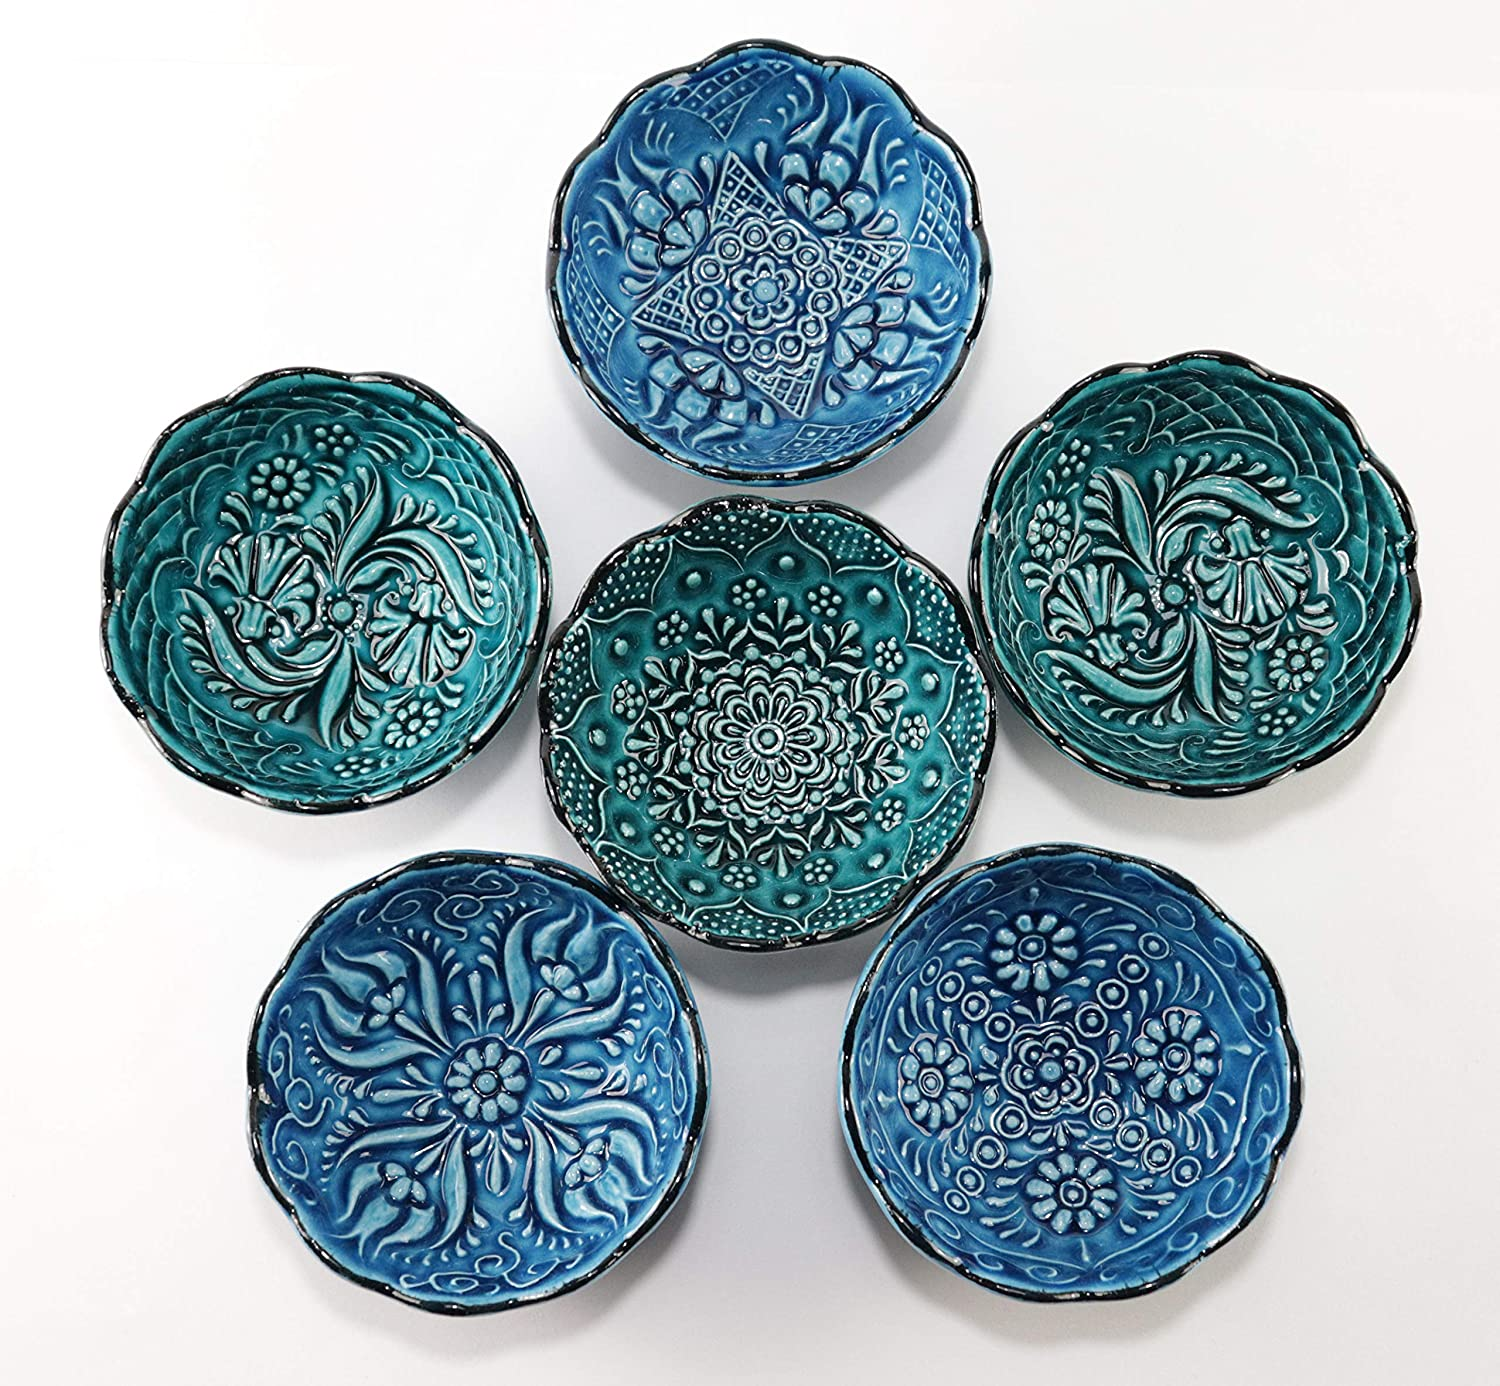 Canarels Decorative Bowl Set – Handcrafted Ceramic Prep Small Sauce Dipping Serving Pinch Bowls – Charcuterie Bowls - Turquoise Home, Kitchen, Coffee Table Decor (3.14 inch, 6 Pcs - Turquoise)